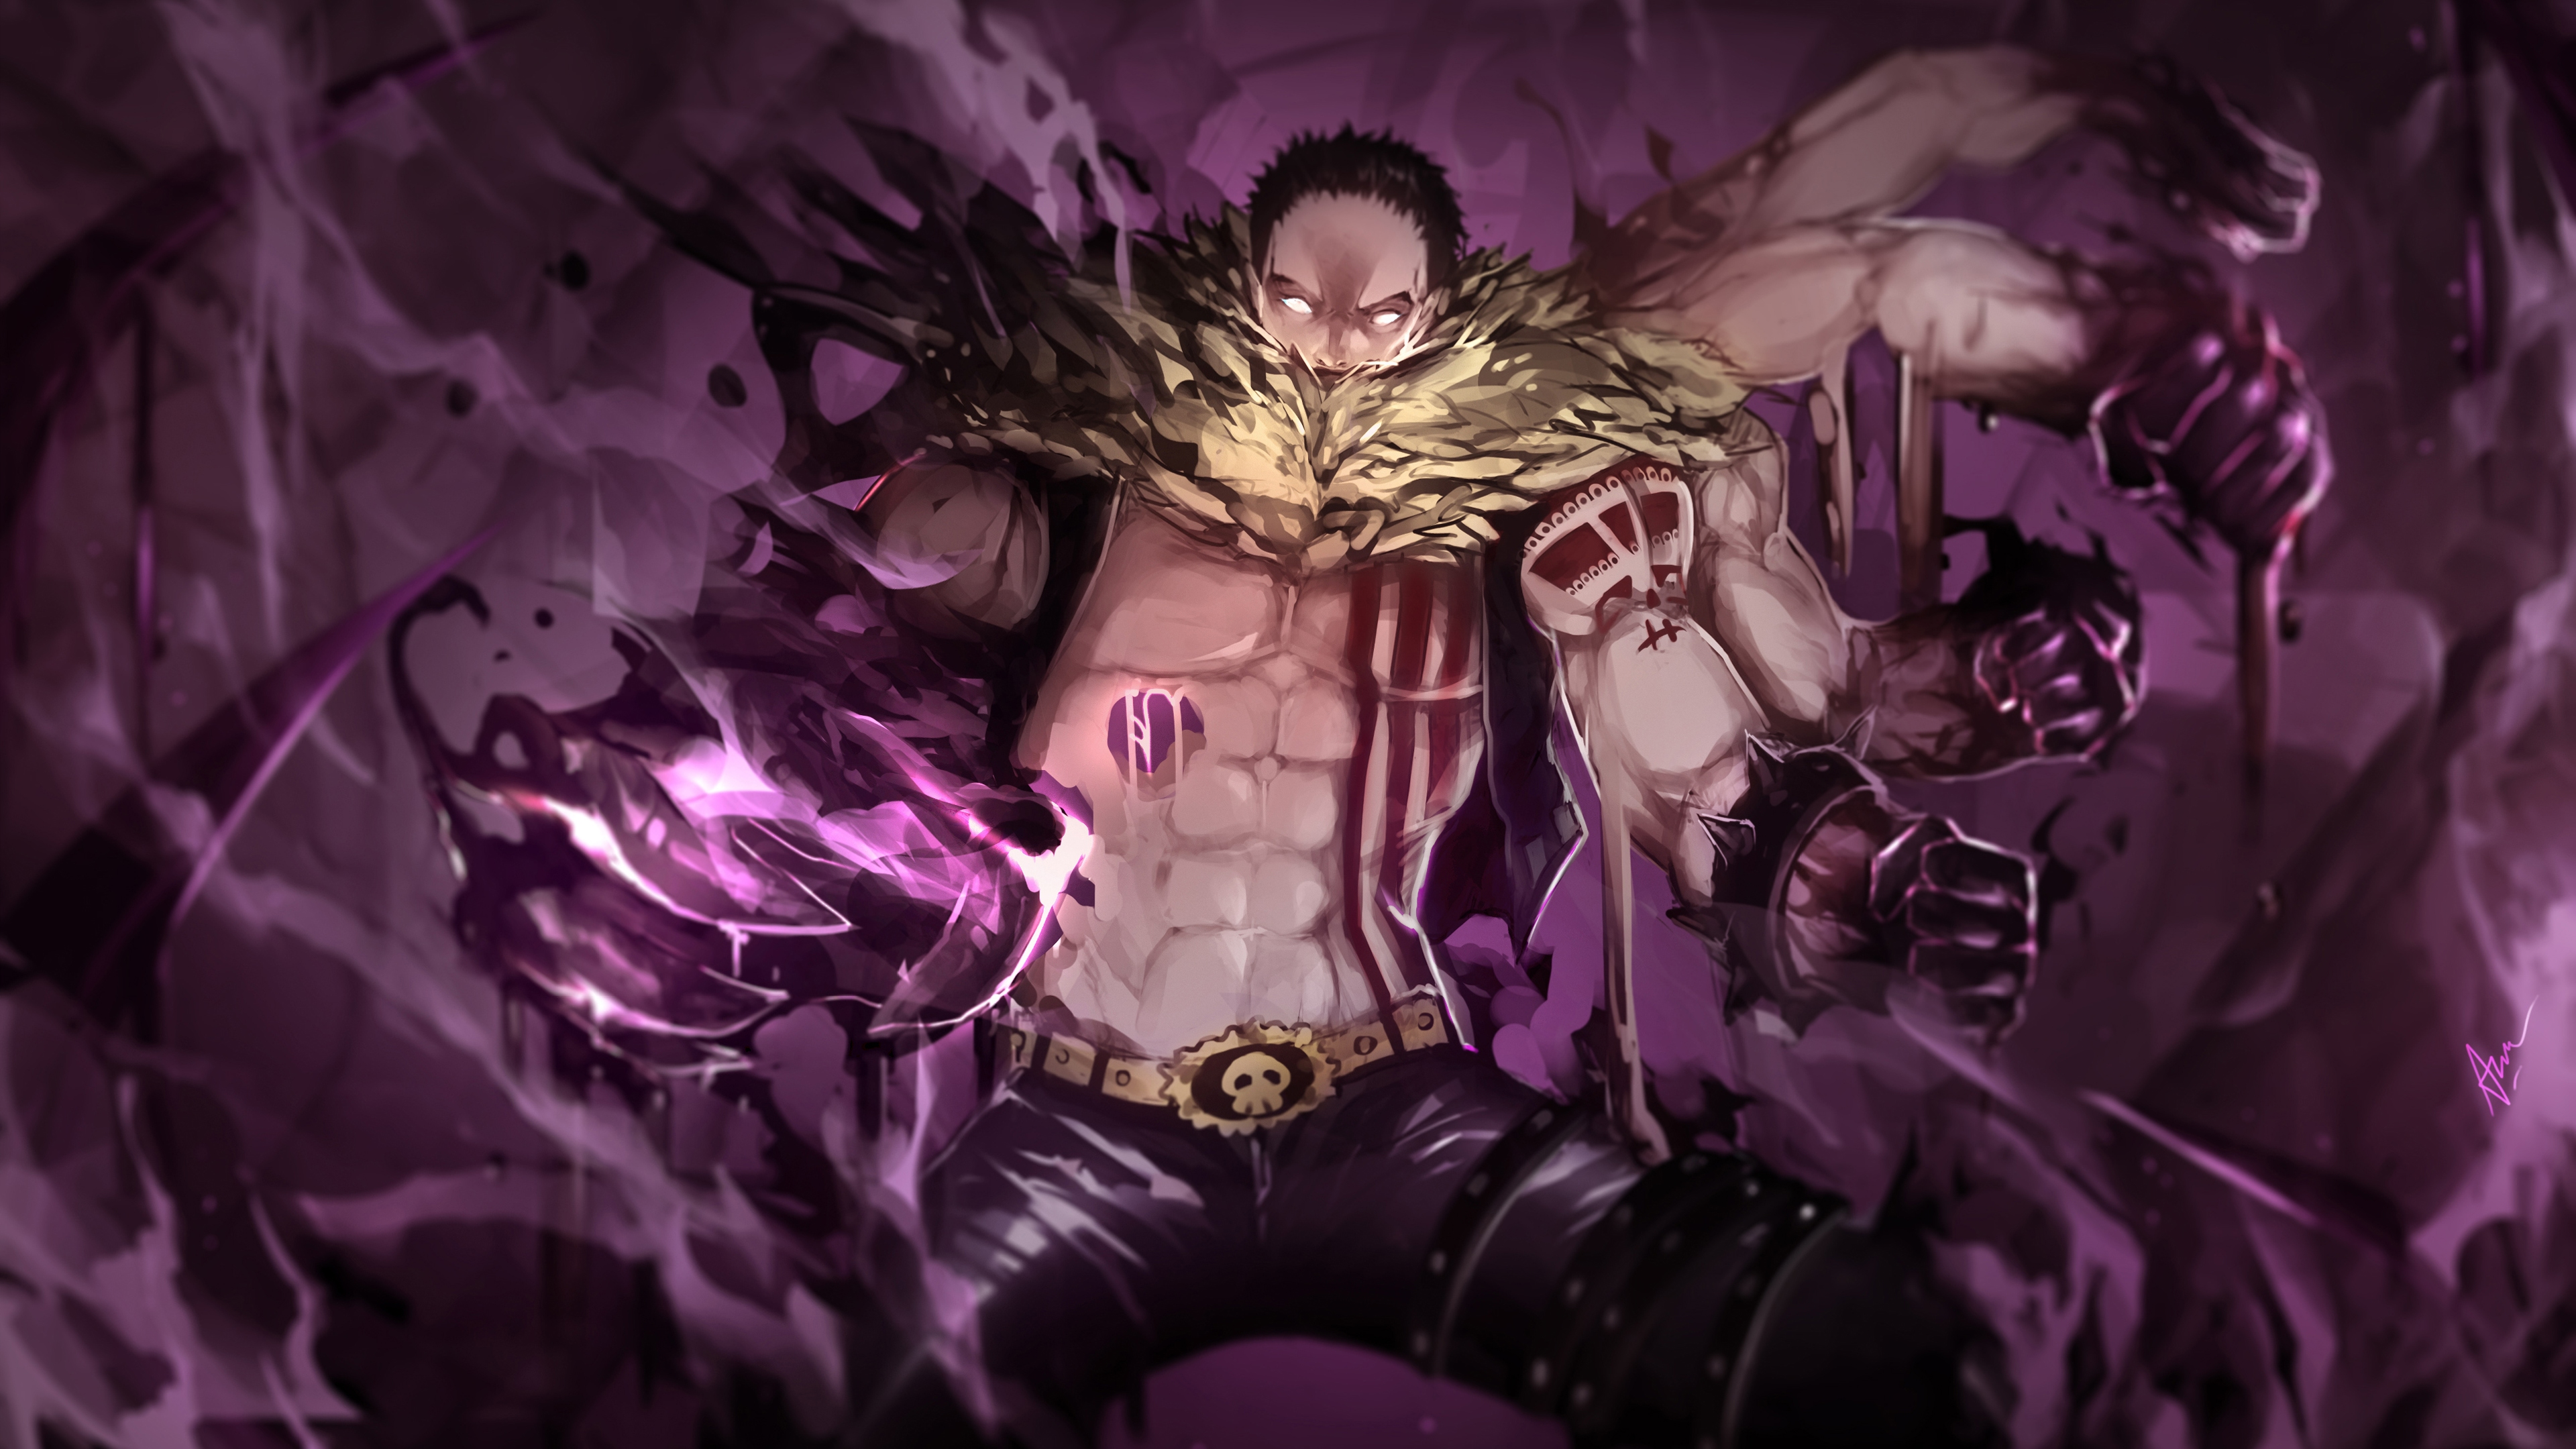 Charlotte Katakuri 4k Ultra HD Wallpaper